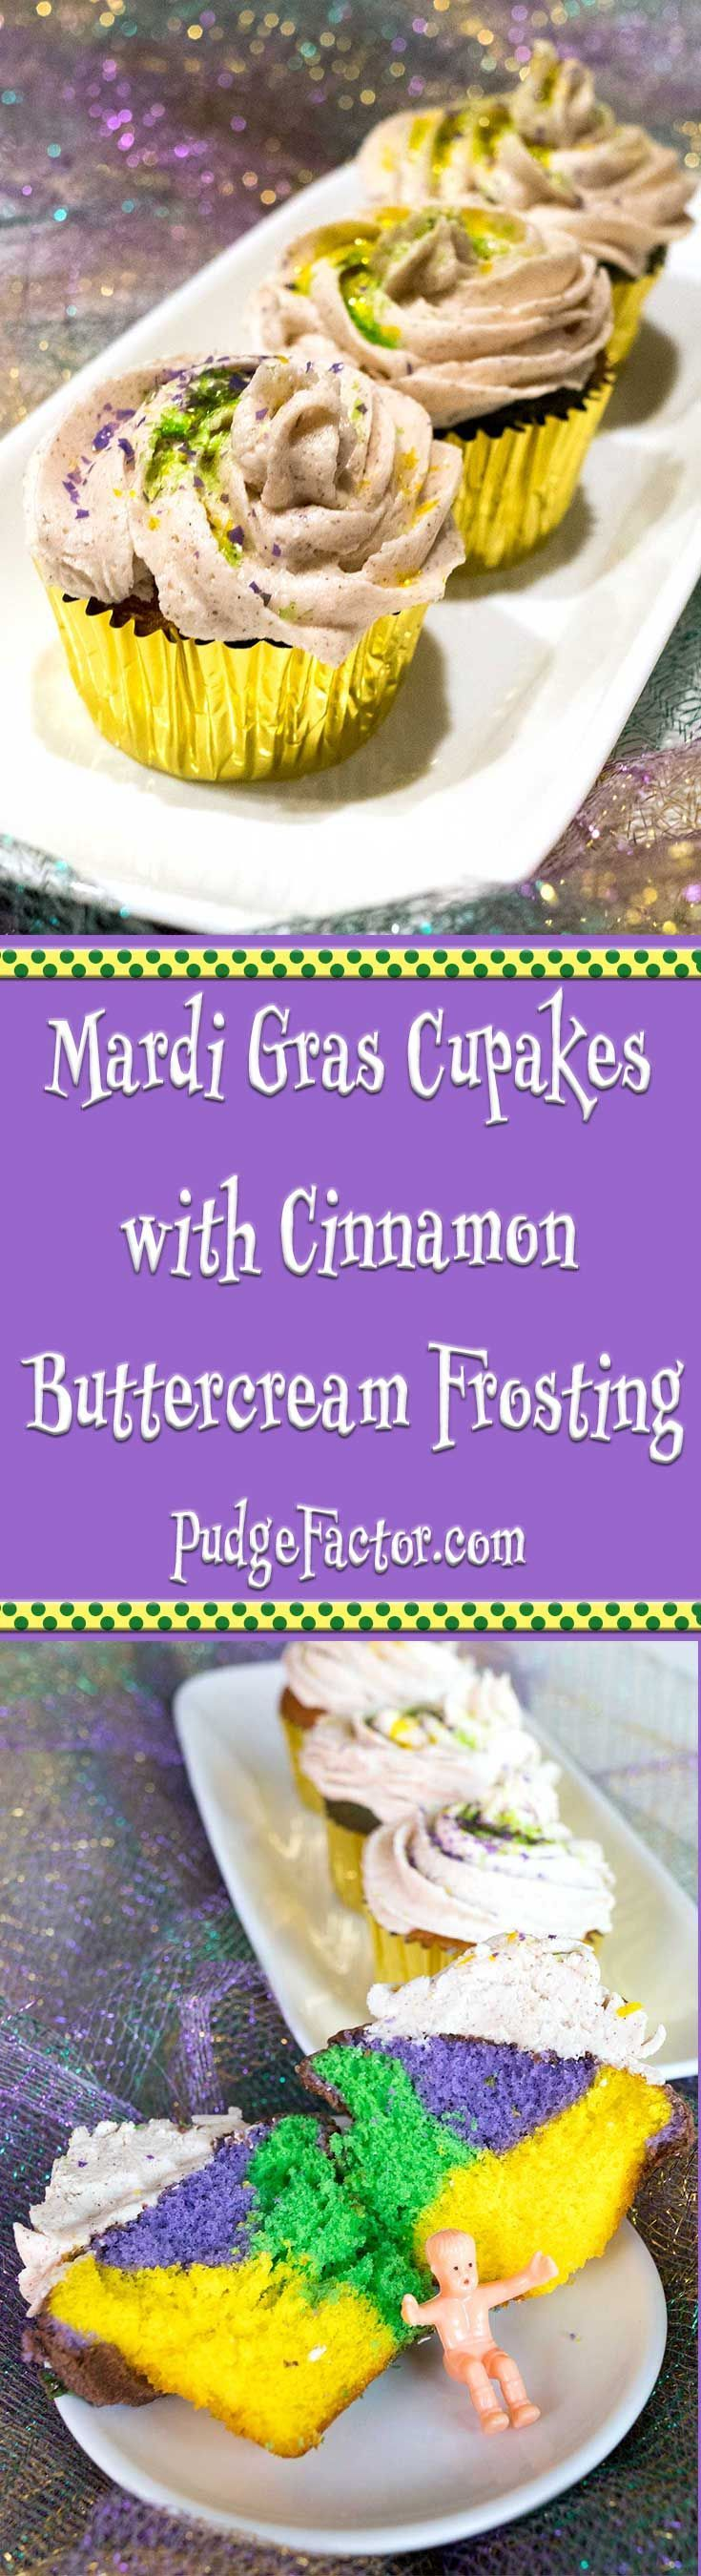 Laissez les bon temps rouler with easy to make Mardi Gras Cupcakes with Cinnamon Buttercream Frosting. Inside is a surprise sure to delight!